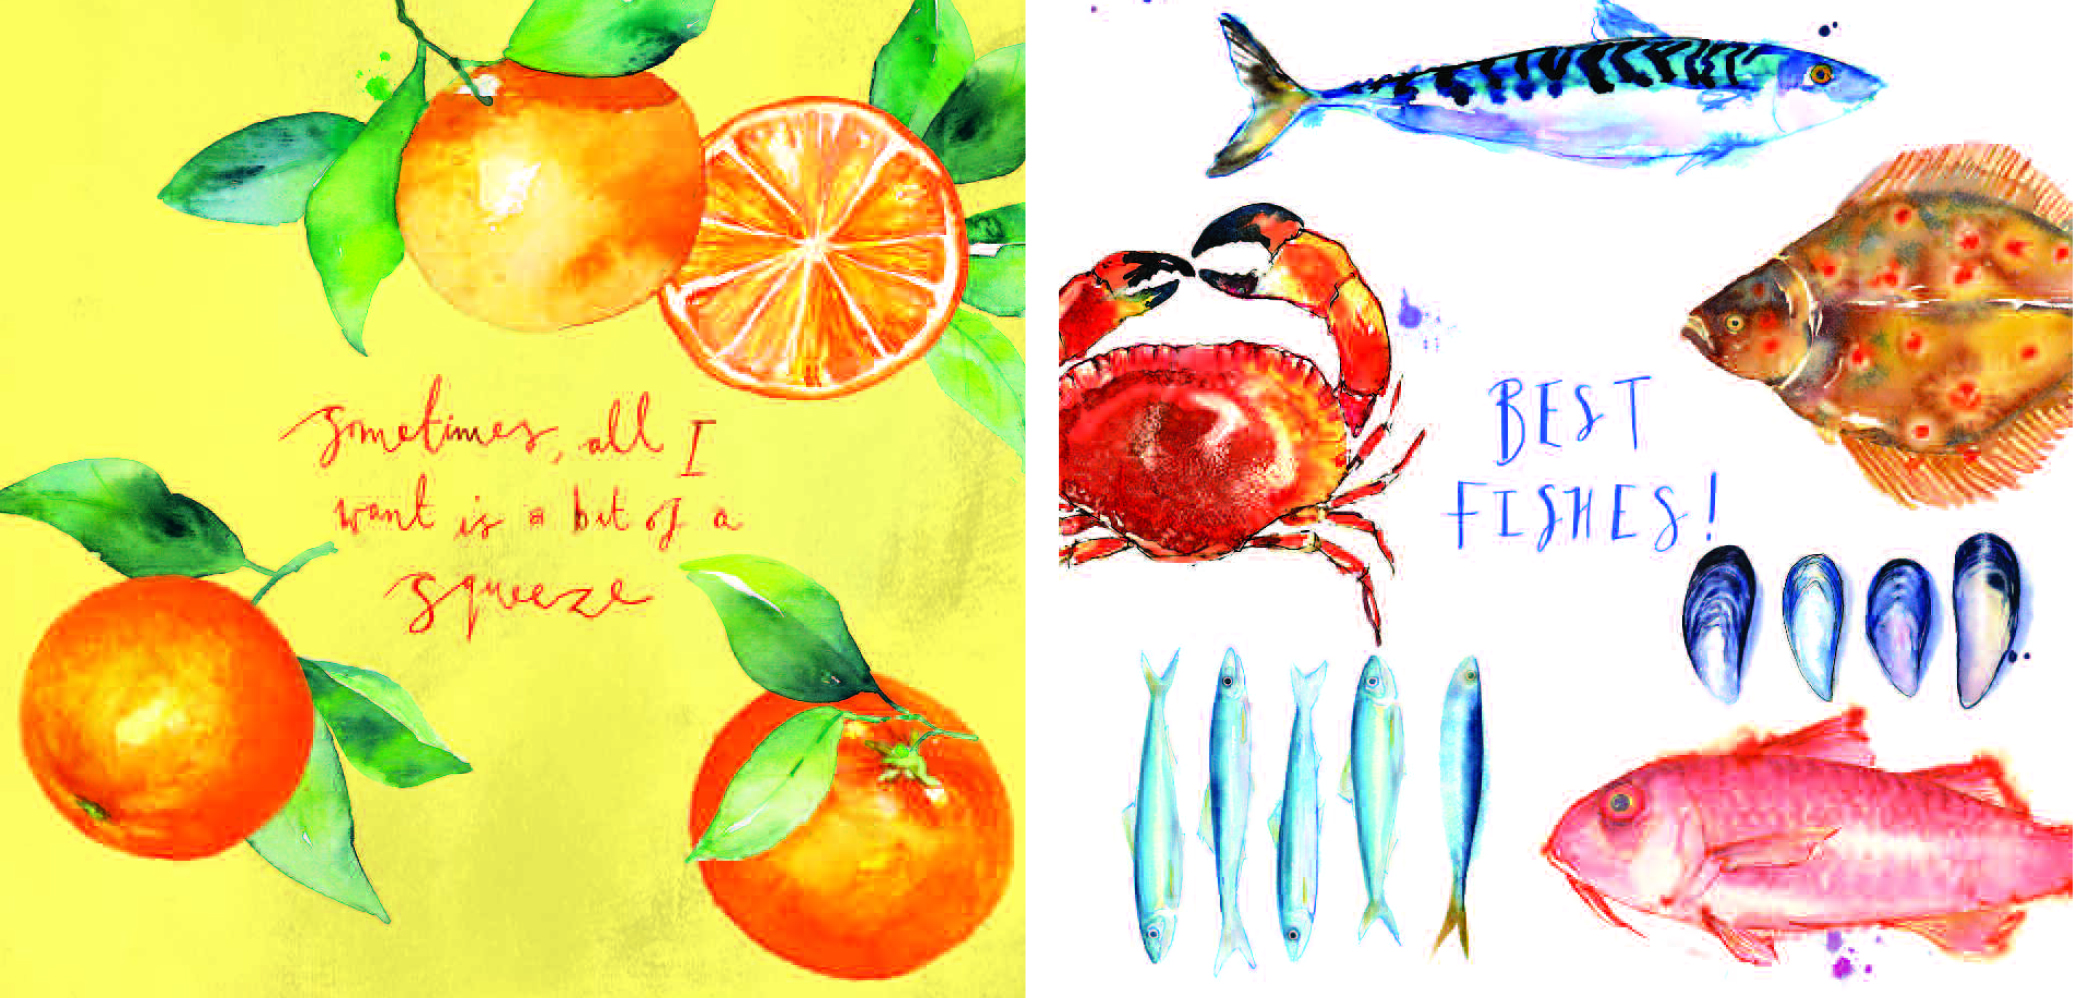 Above:The watercolour art by David Hawson forms the basis of the card designs.